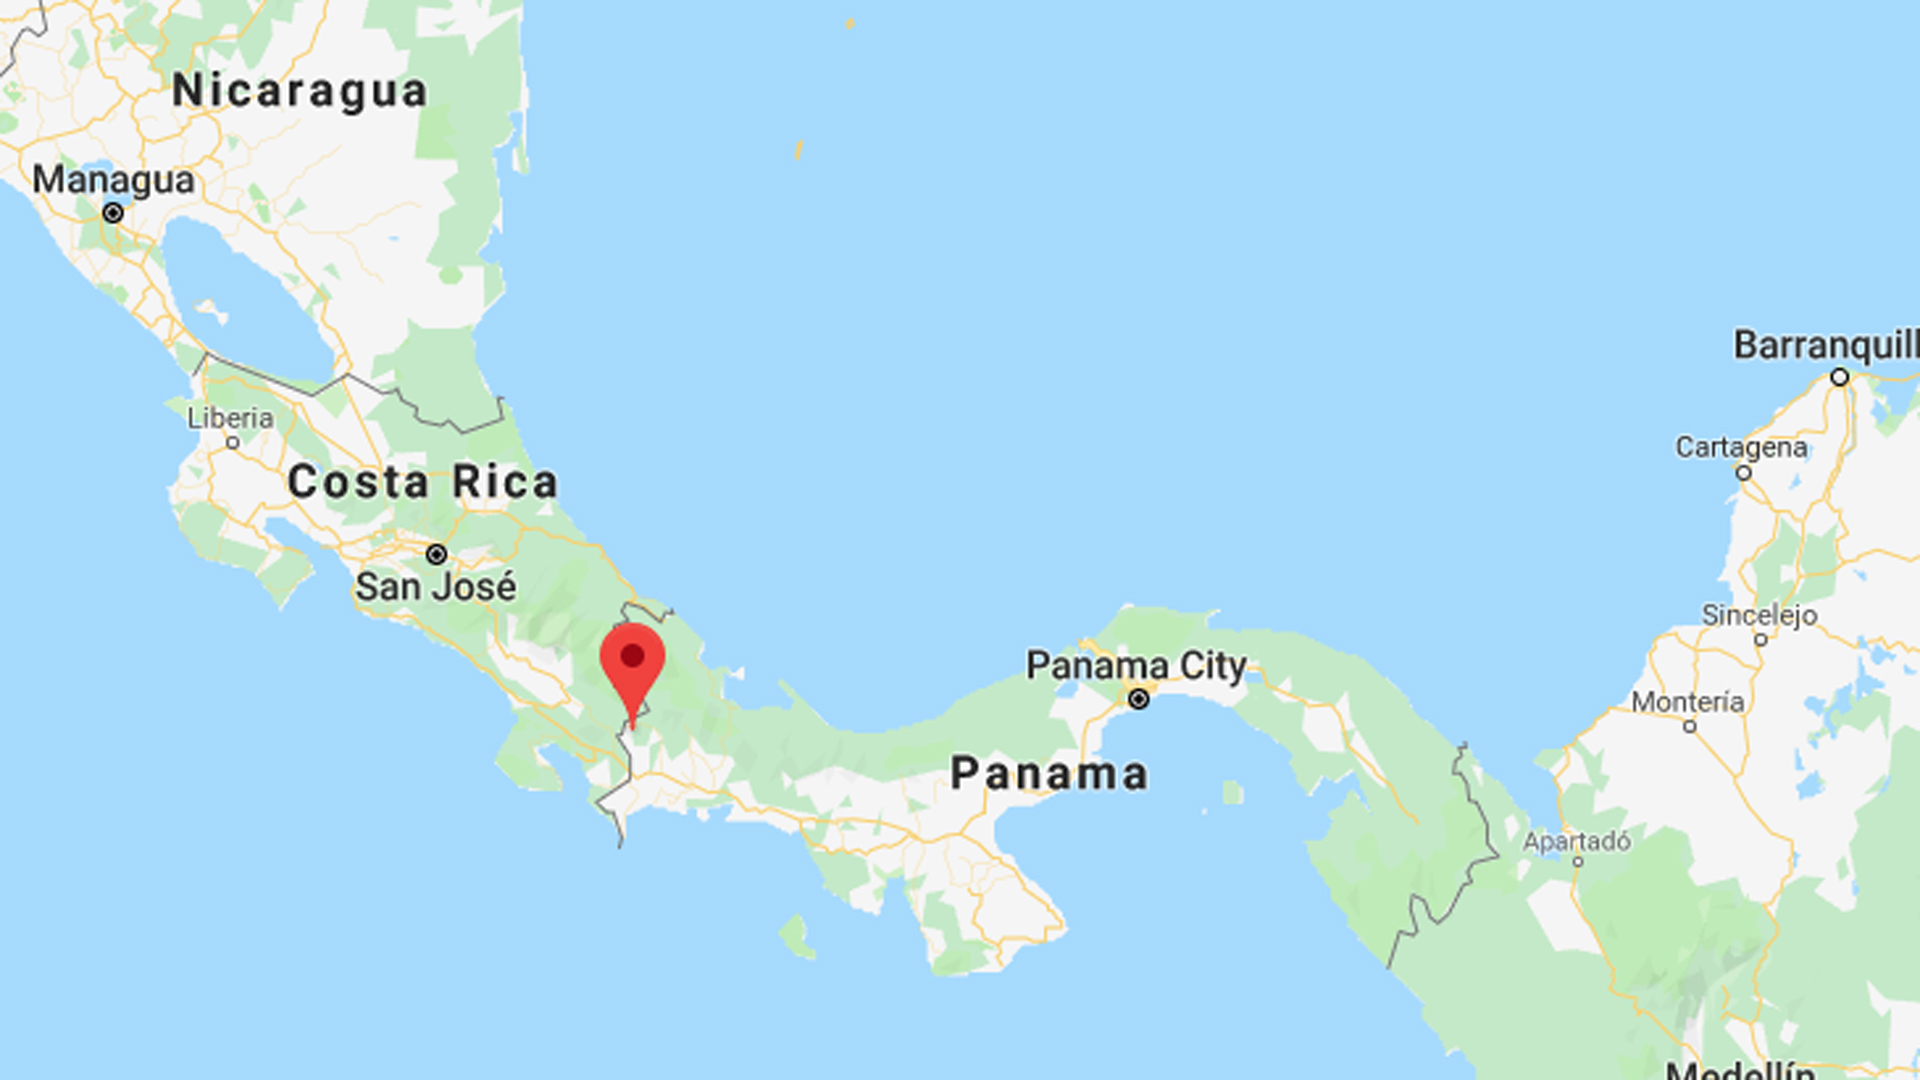 The area of Plaza de Caisan, Panama is indicated here. (Credit: Google Maps)